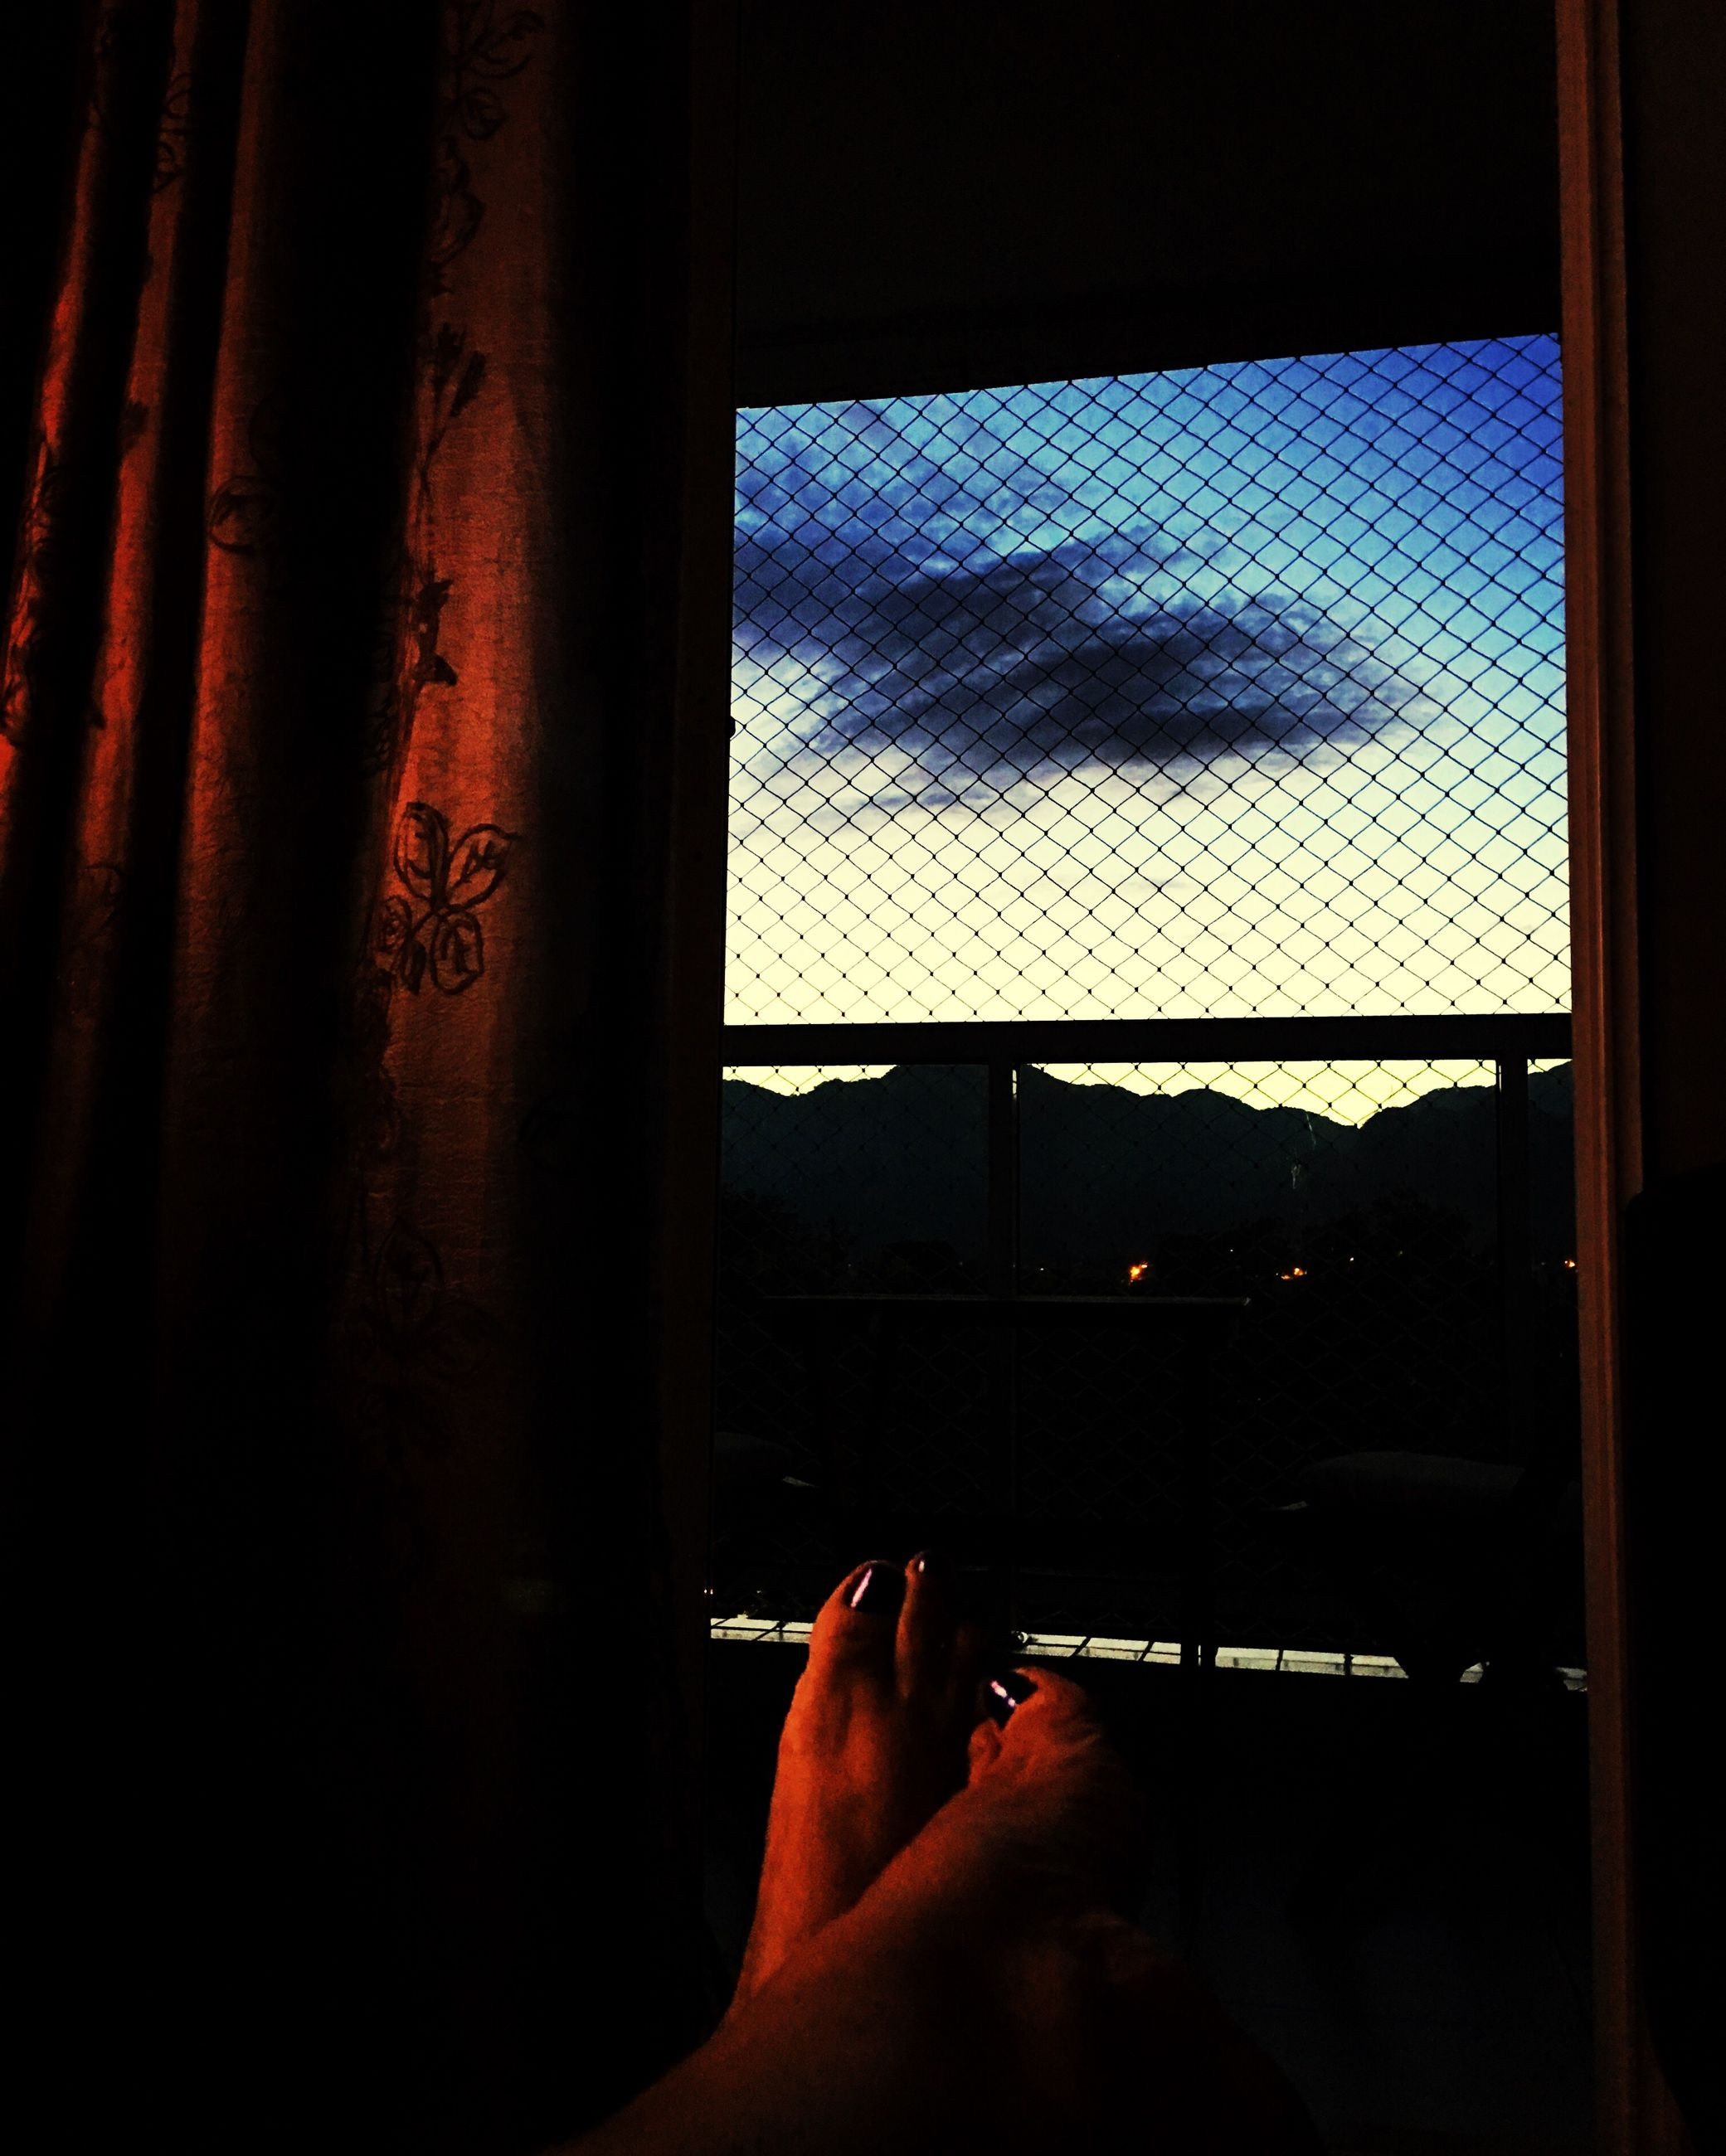 window, indoors, human hand, one person, human body part, vehicle interior, real people, close-up, day, sky, people